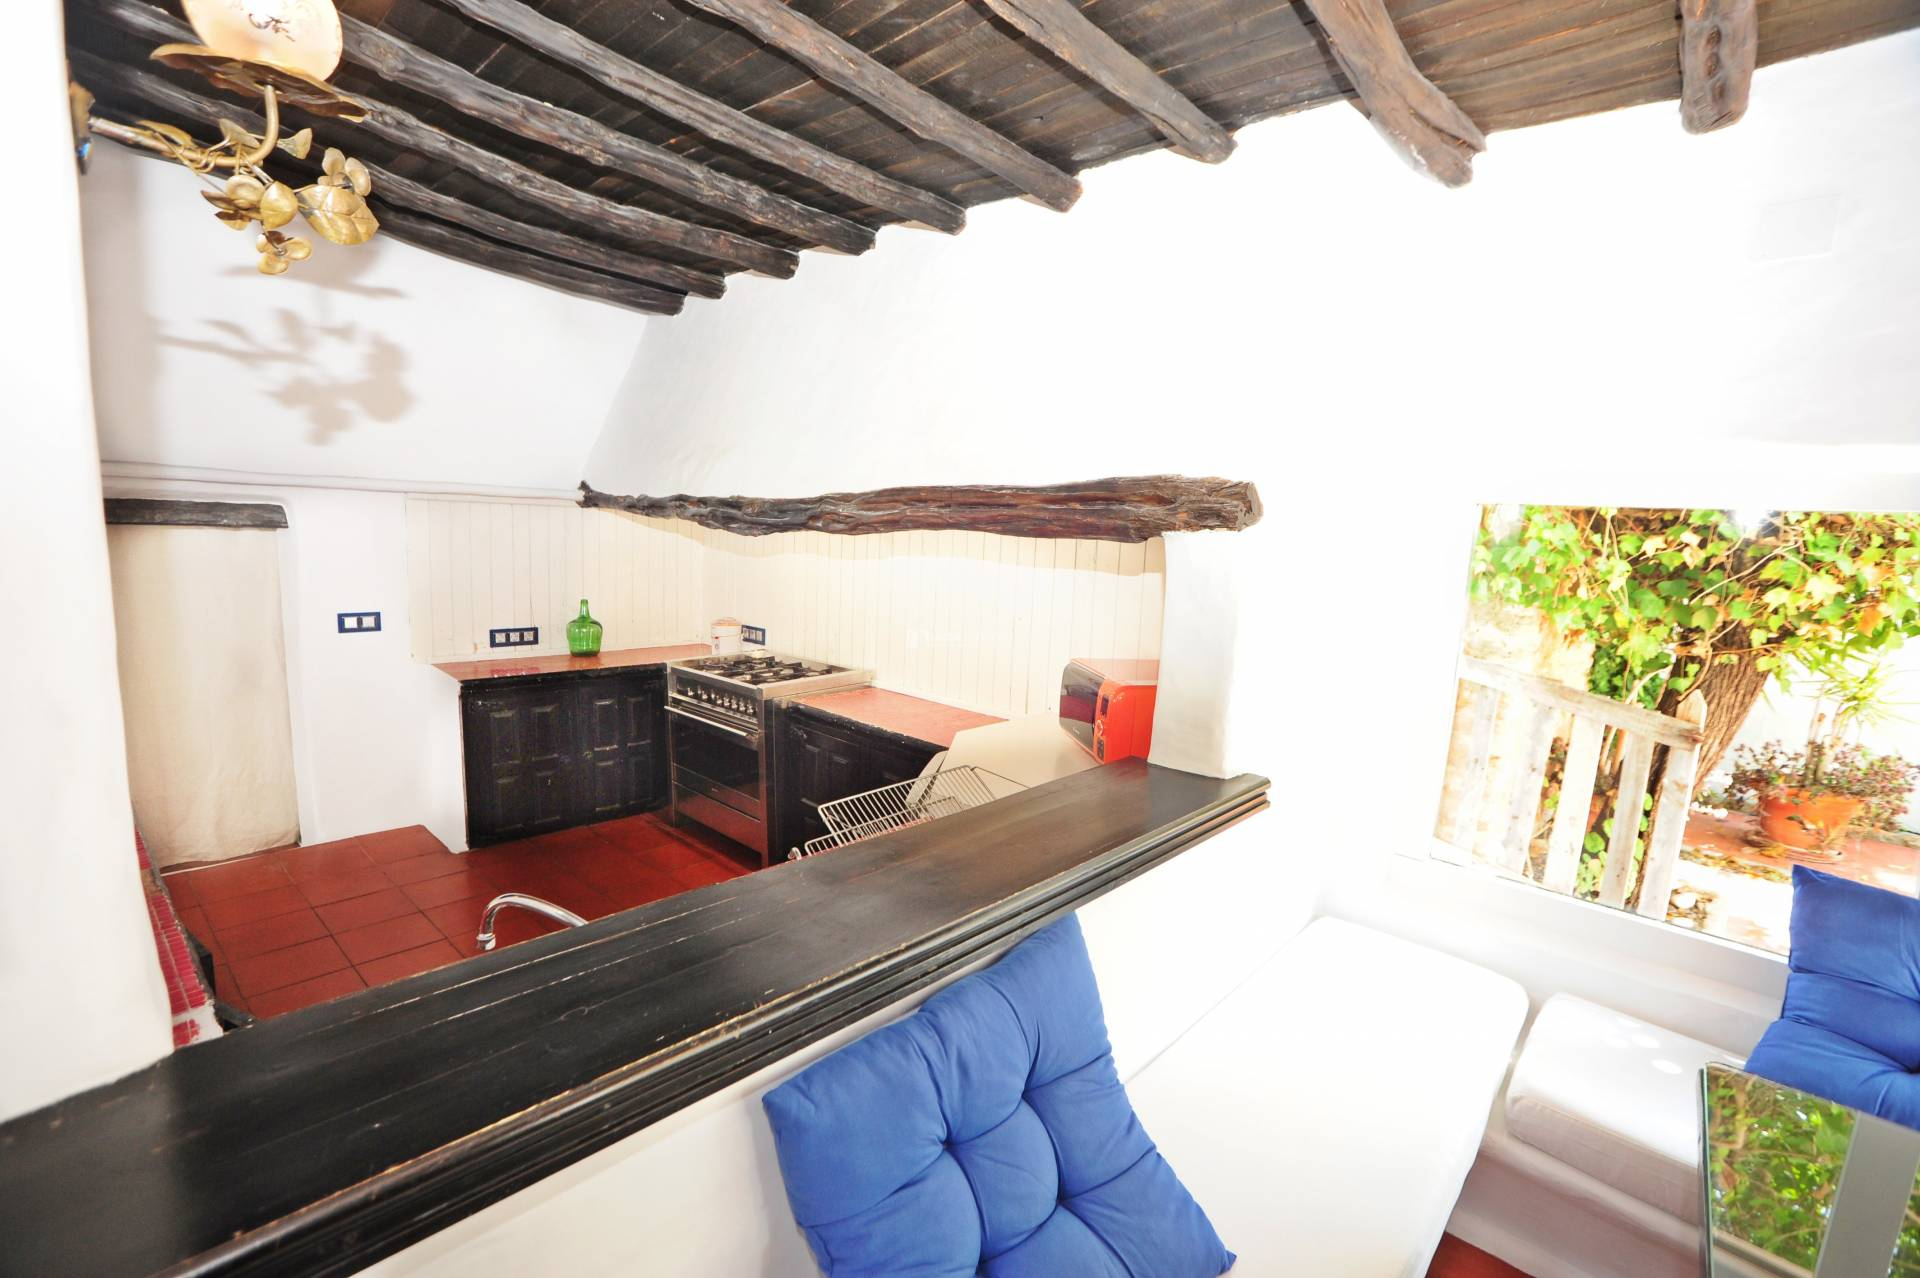 6 Bedrooms Villa in San Rafael to rent perspectiva 9